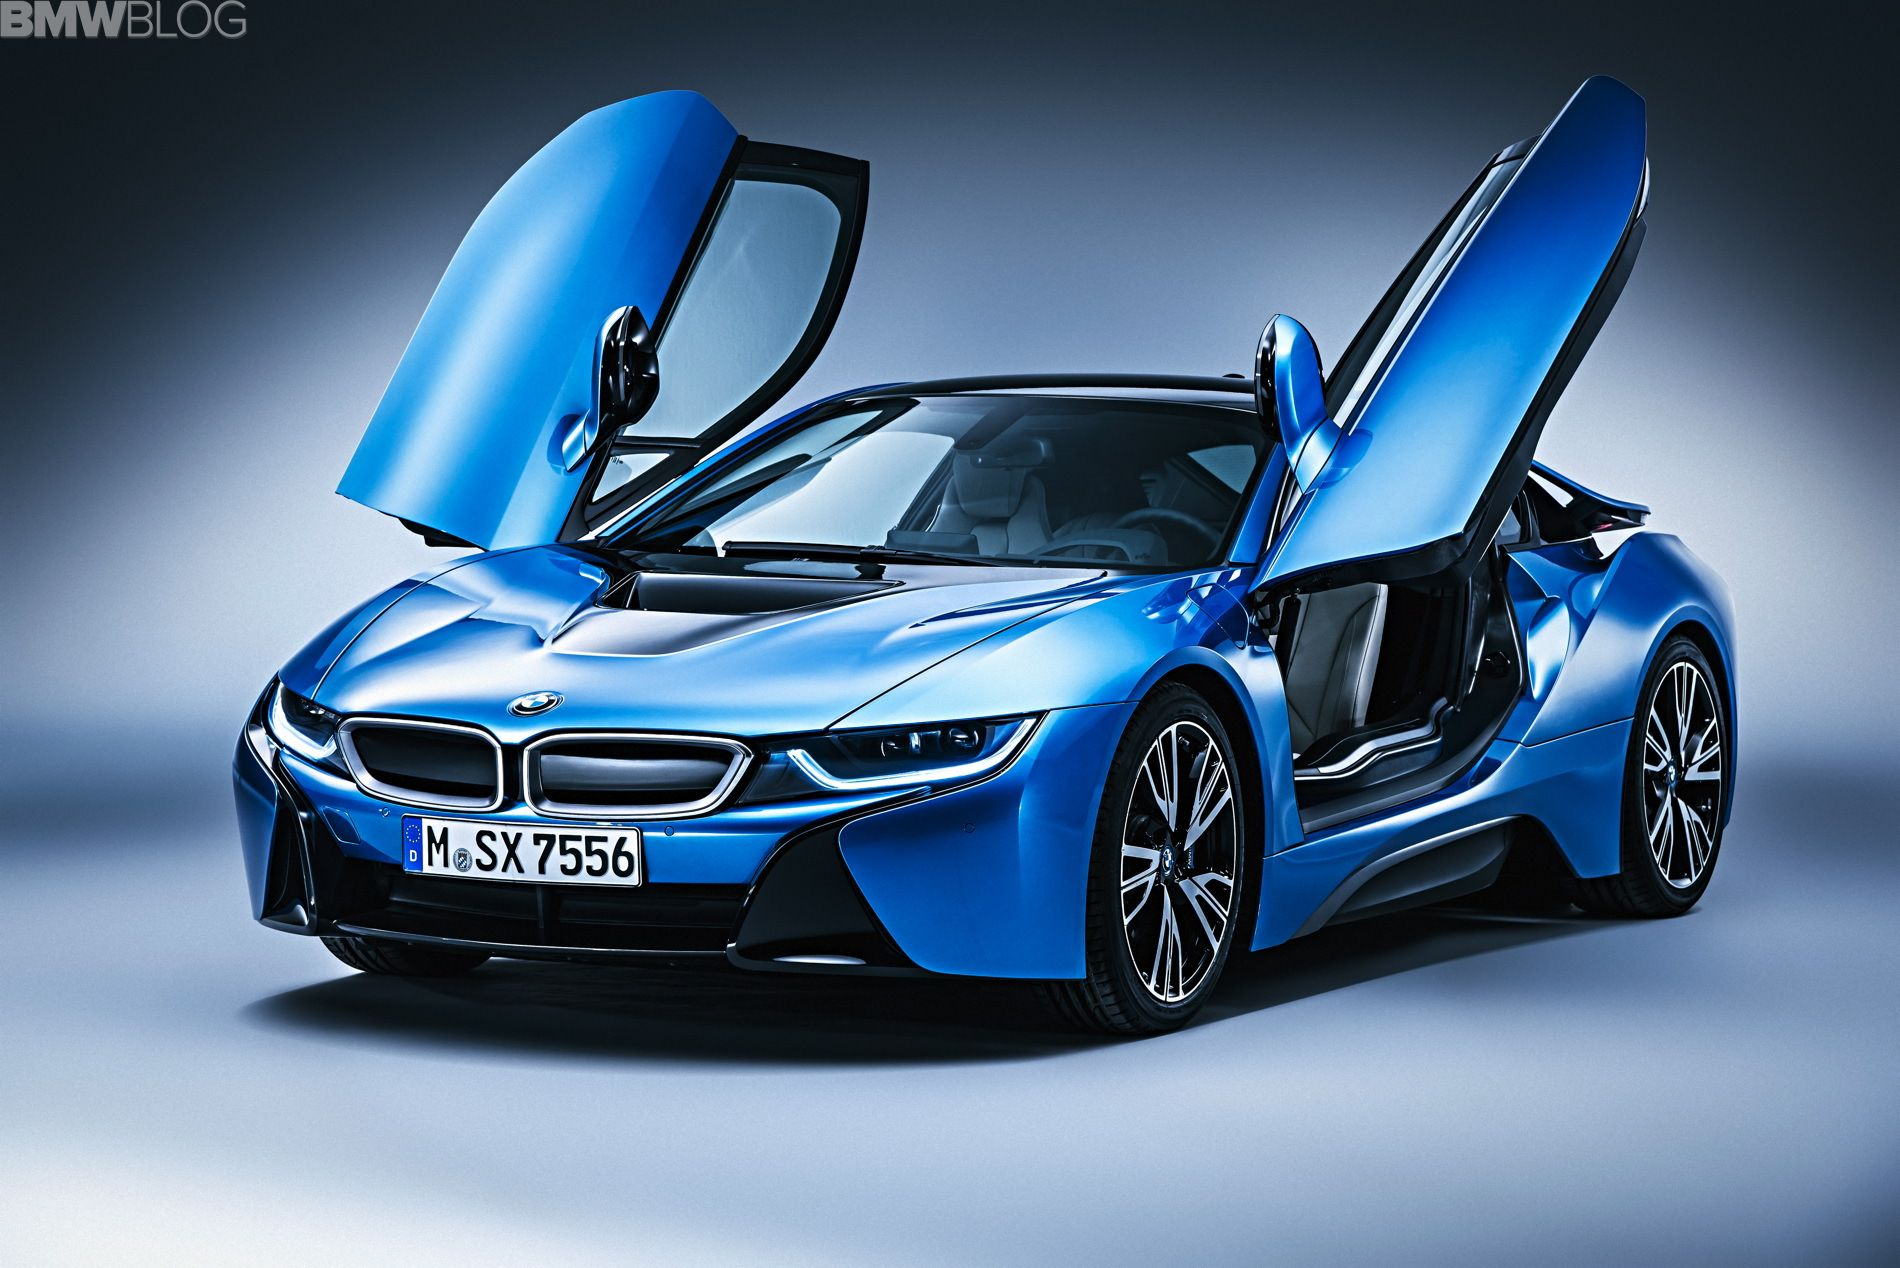 Bmw i8 pure impulse package 02 750x500 2015 bmw i8 photo gallery from los angeles